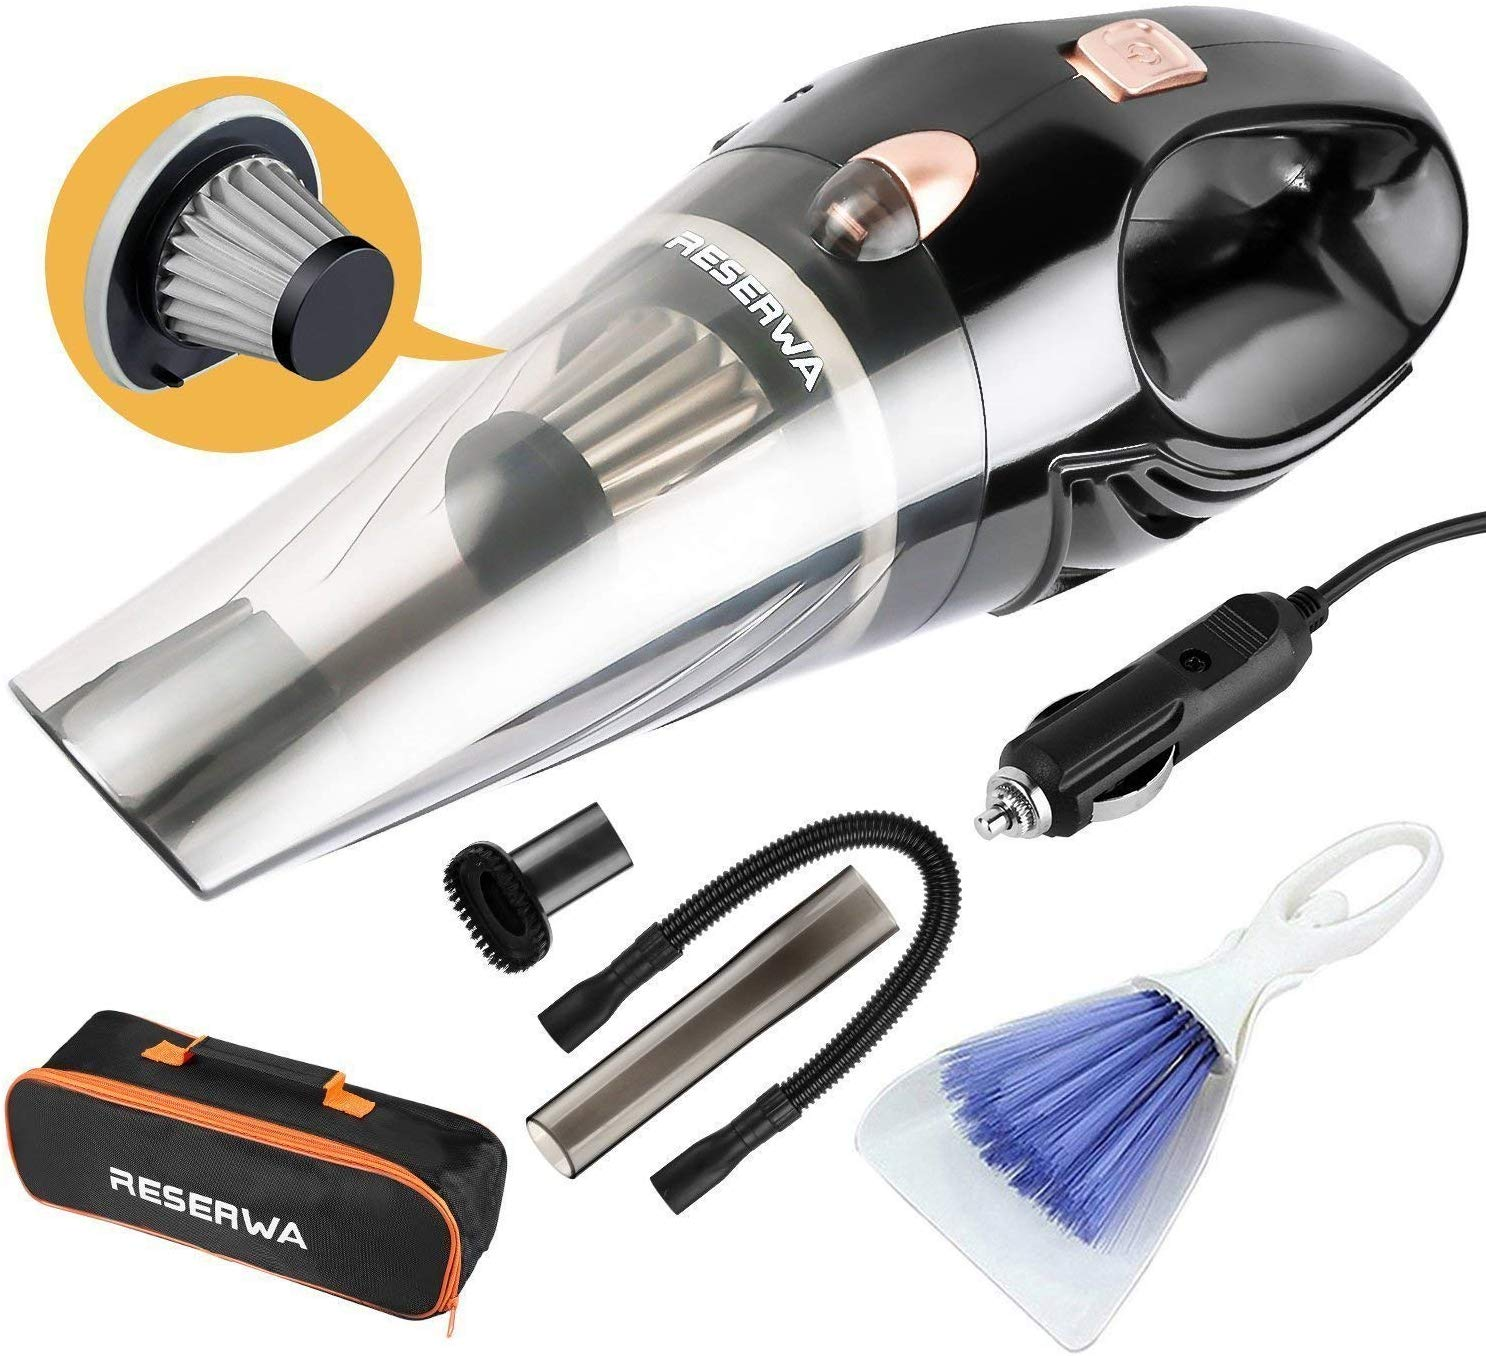 Car Vacuum 12V 106W Car Vacuum Cleaner 4500PA Much Stronger Suction Potable Handheld Auto Vacuum Cleaner